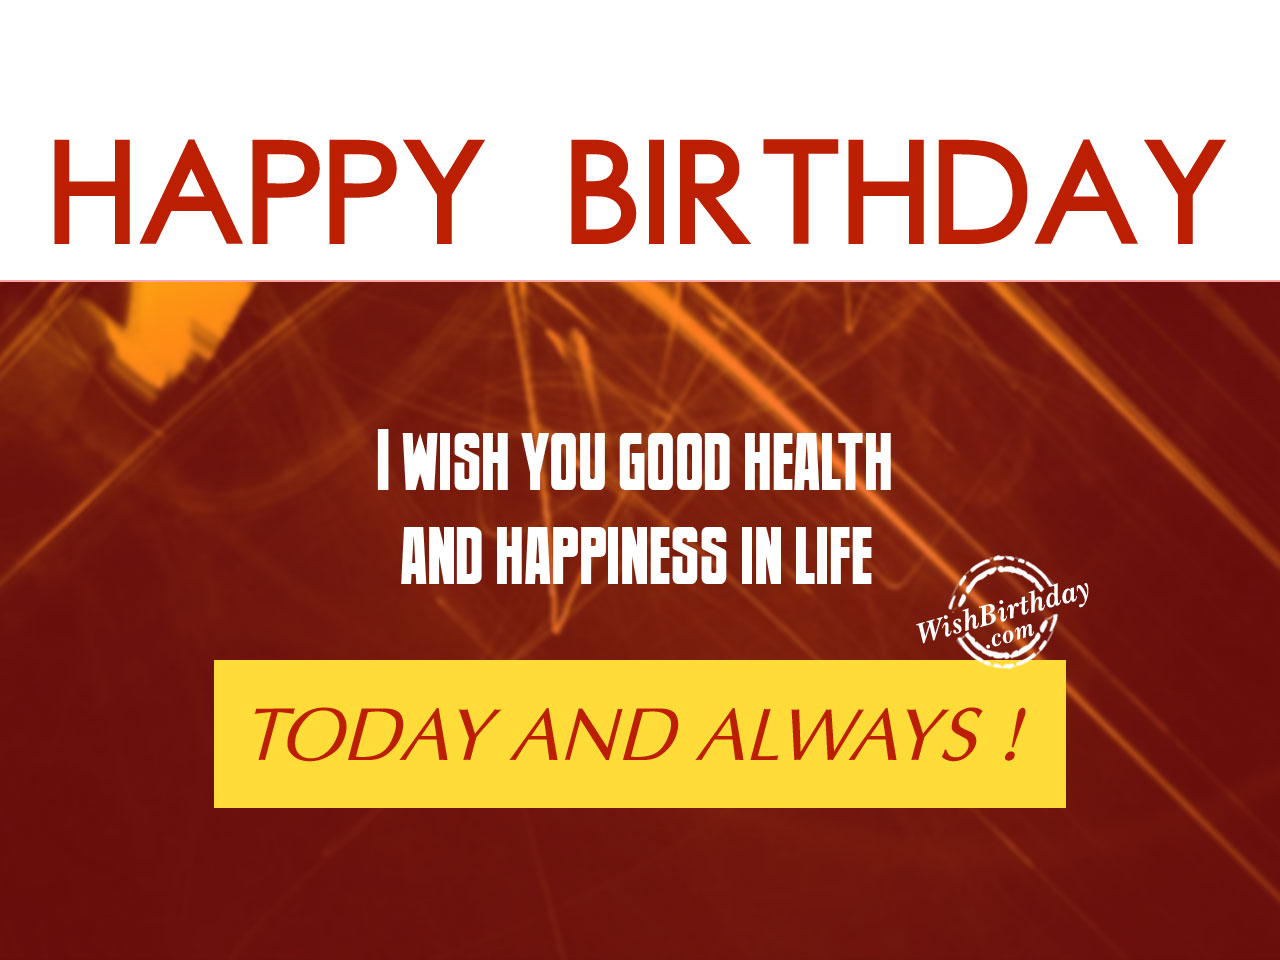 Birthday wishes with blessings birthday images pictures i wish you good healthhappy birthday wb01 m4hsunfo